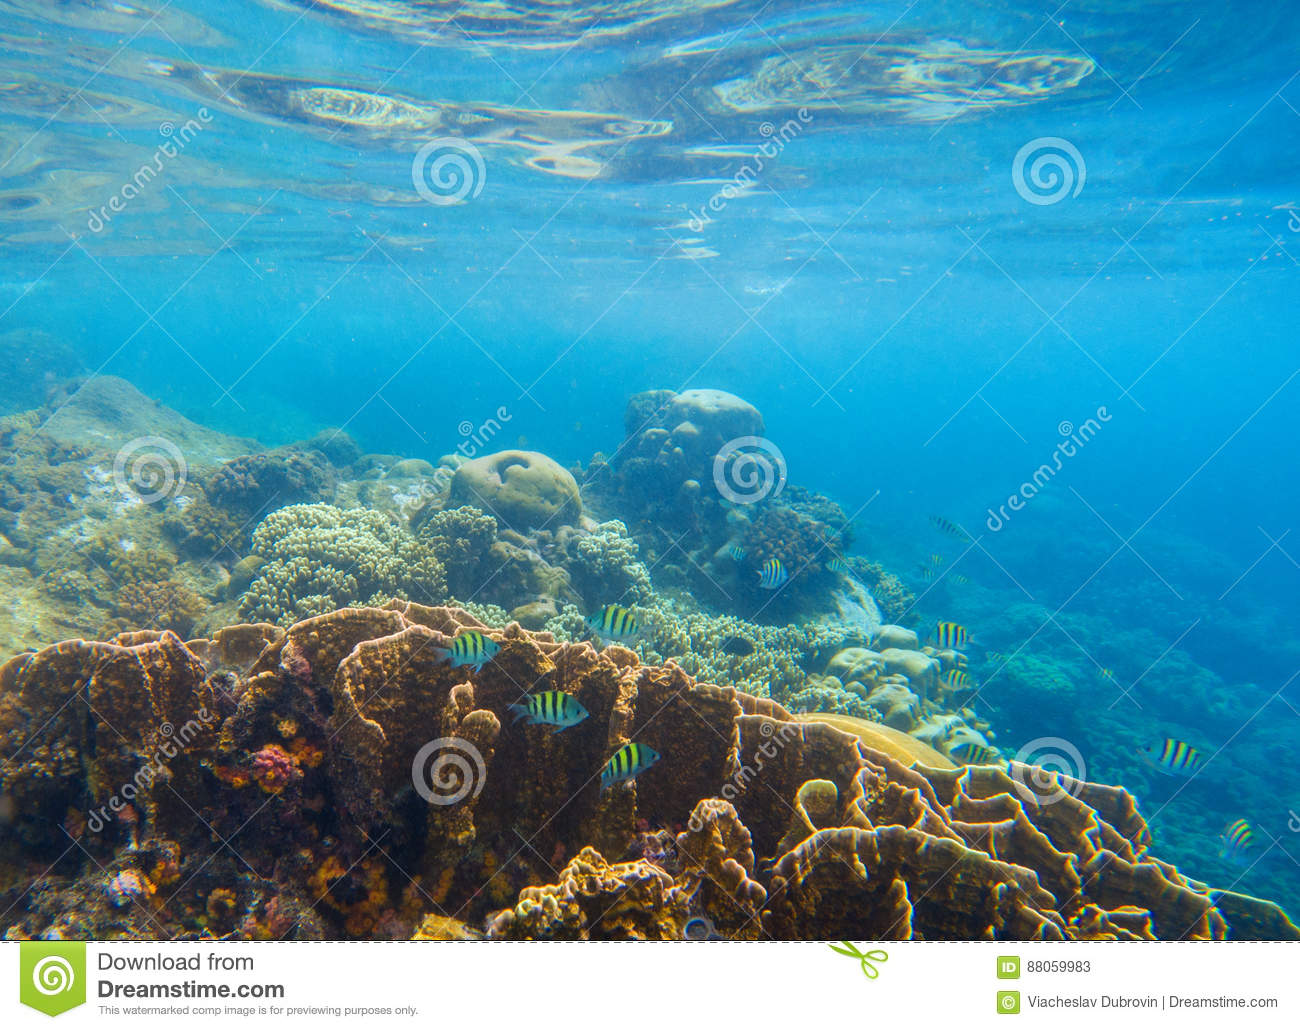 Underwater scenery with coral reef and tropical fishes. Blue sea view with marine fauna.